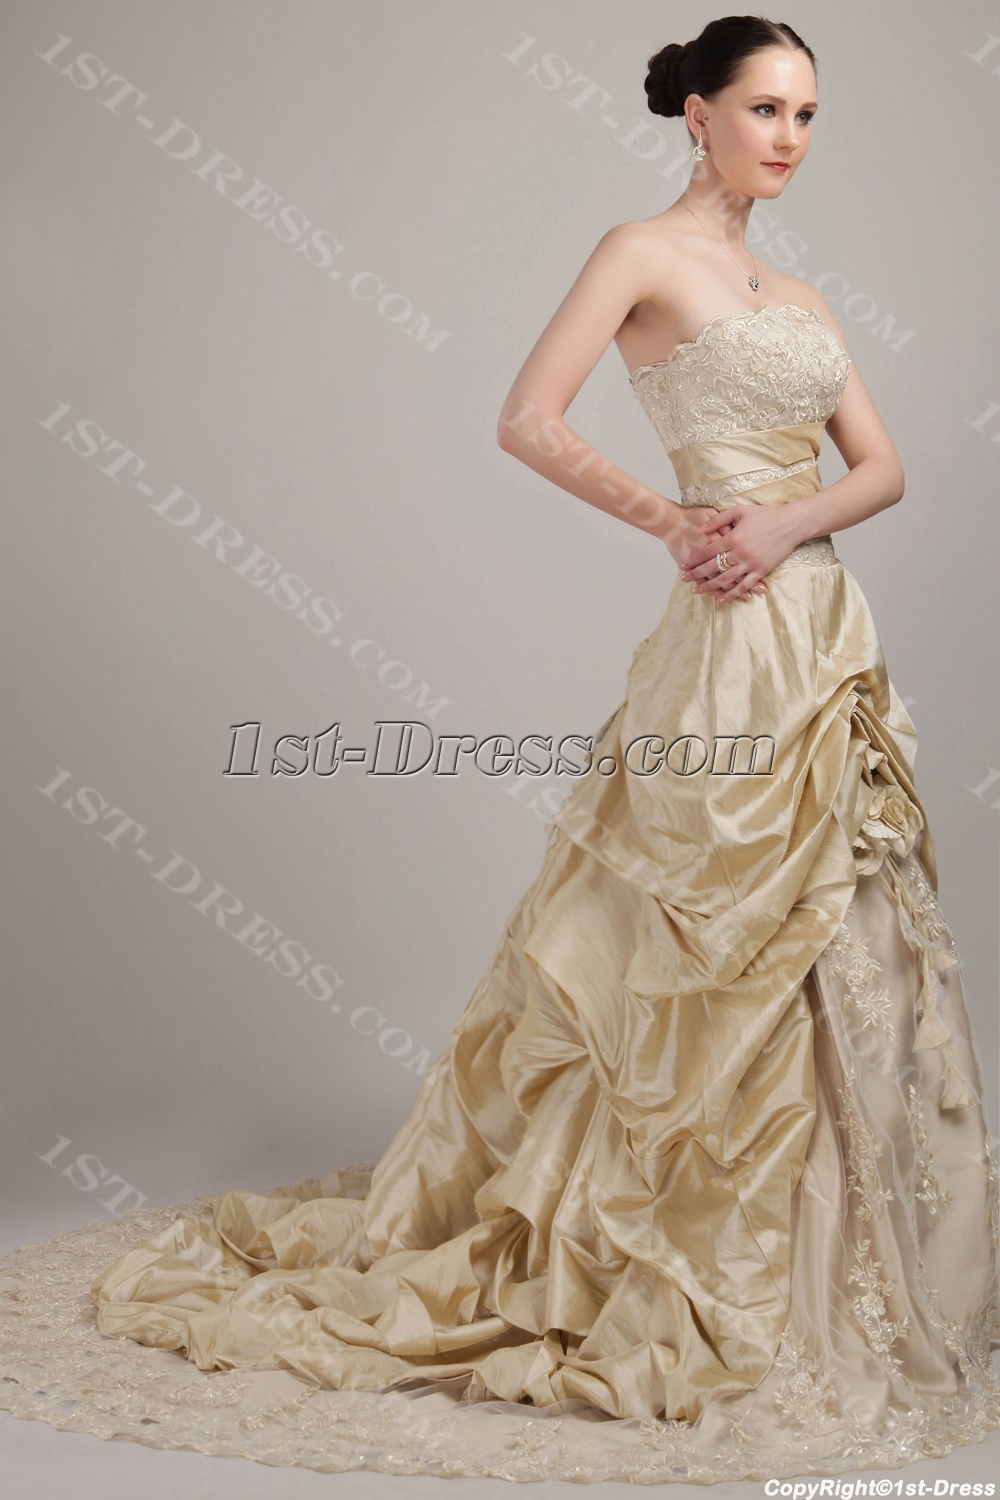 images/201304/big/Champagne-Charming-Princess-Bridal-Gown-IMG_3124-1083-b-1-1366278683.jpg